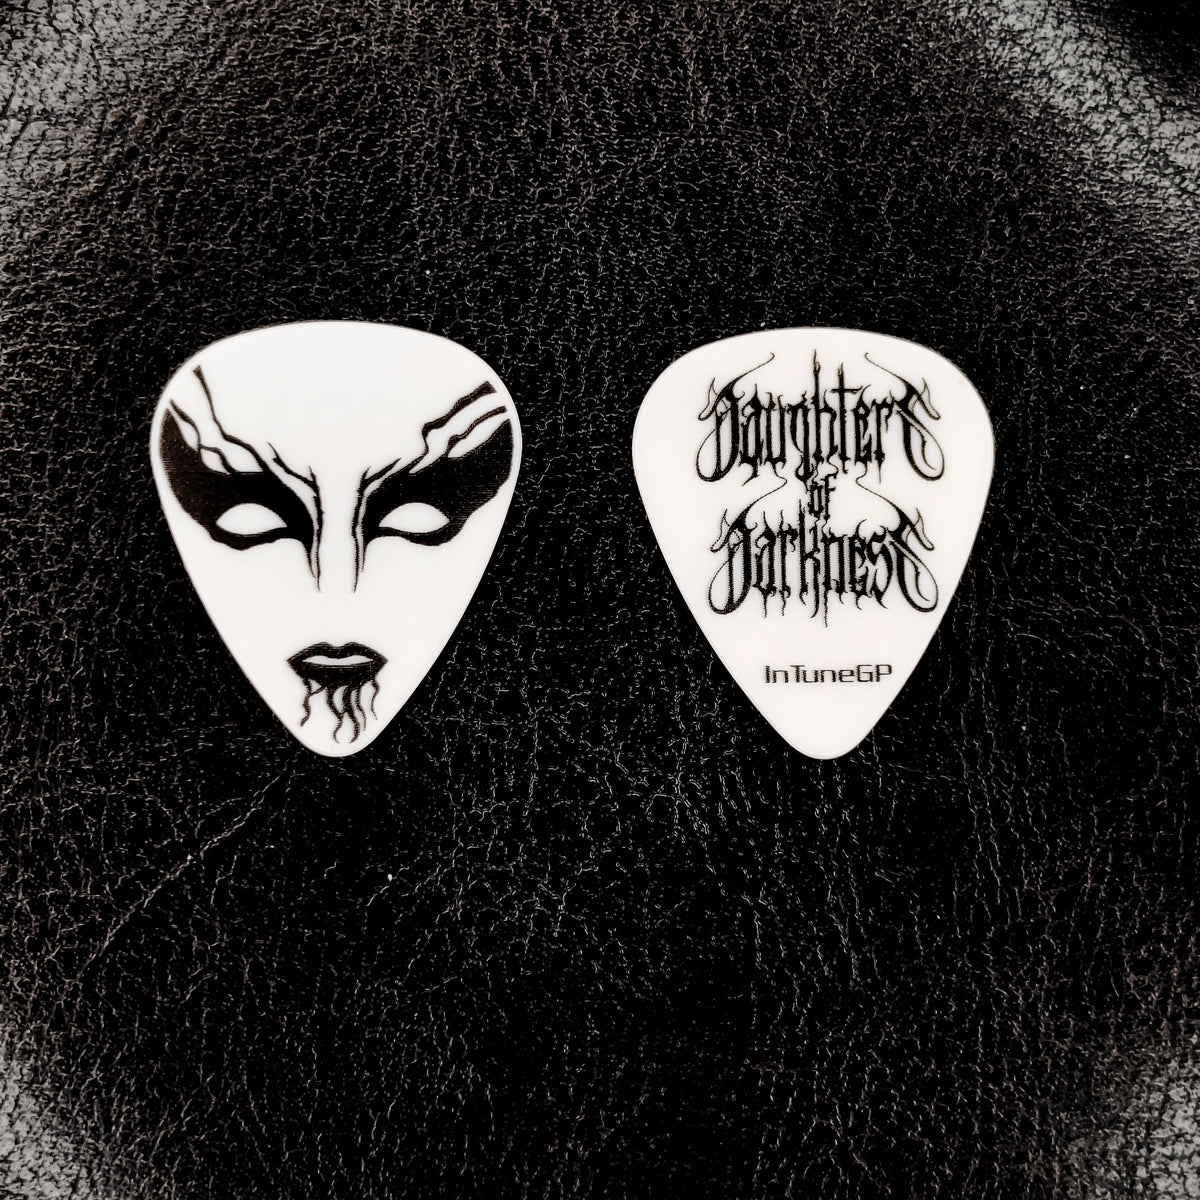 Daughters of Darkness - Krista - Guitar Pick